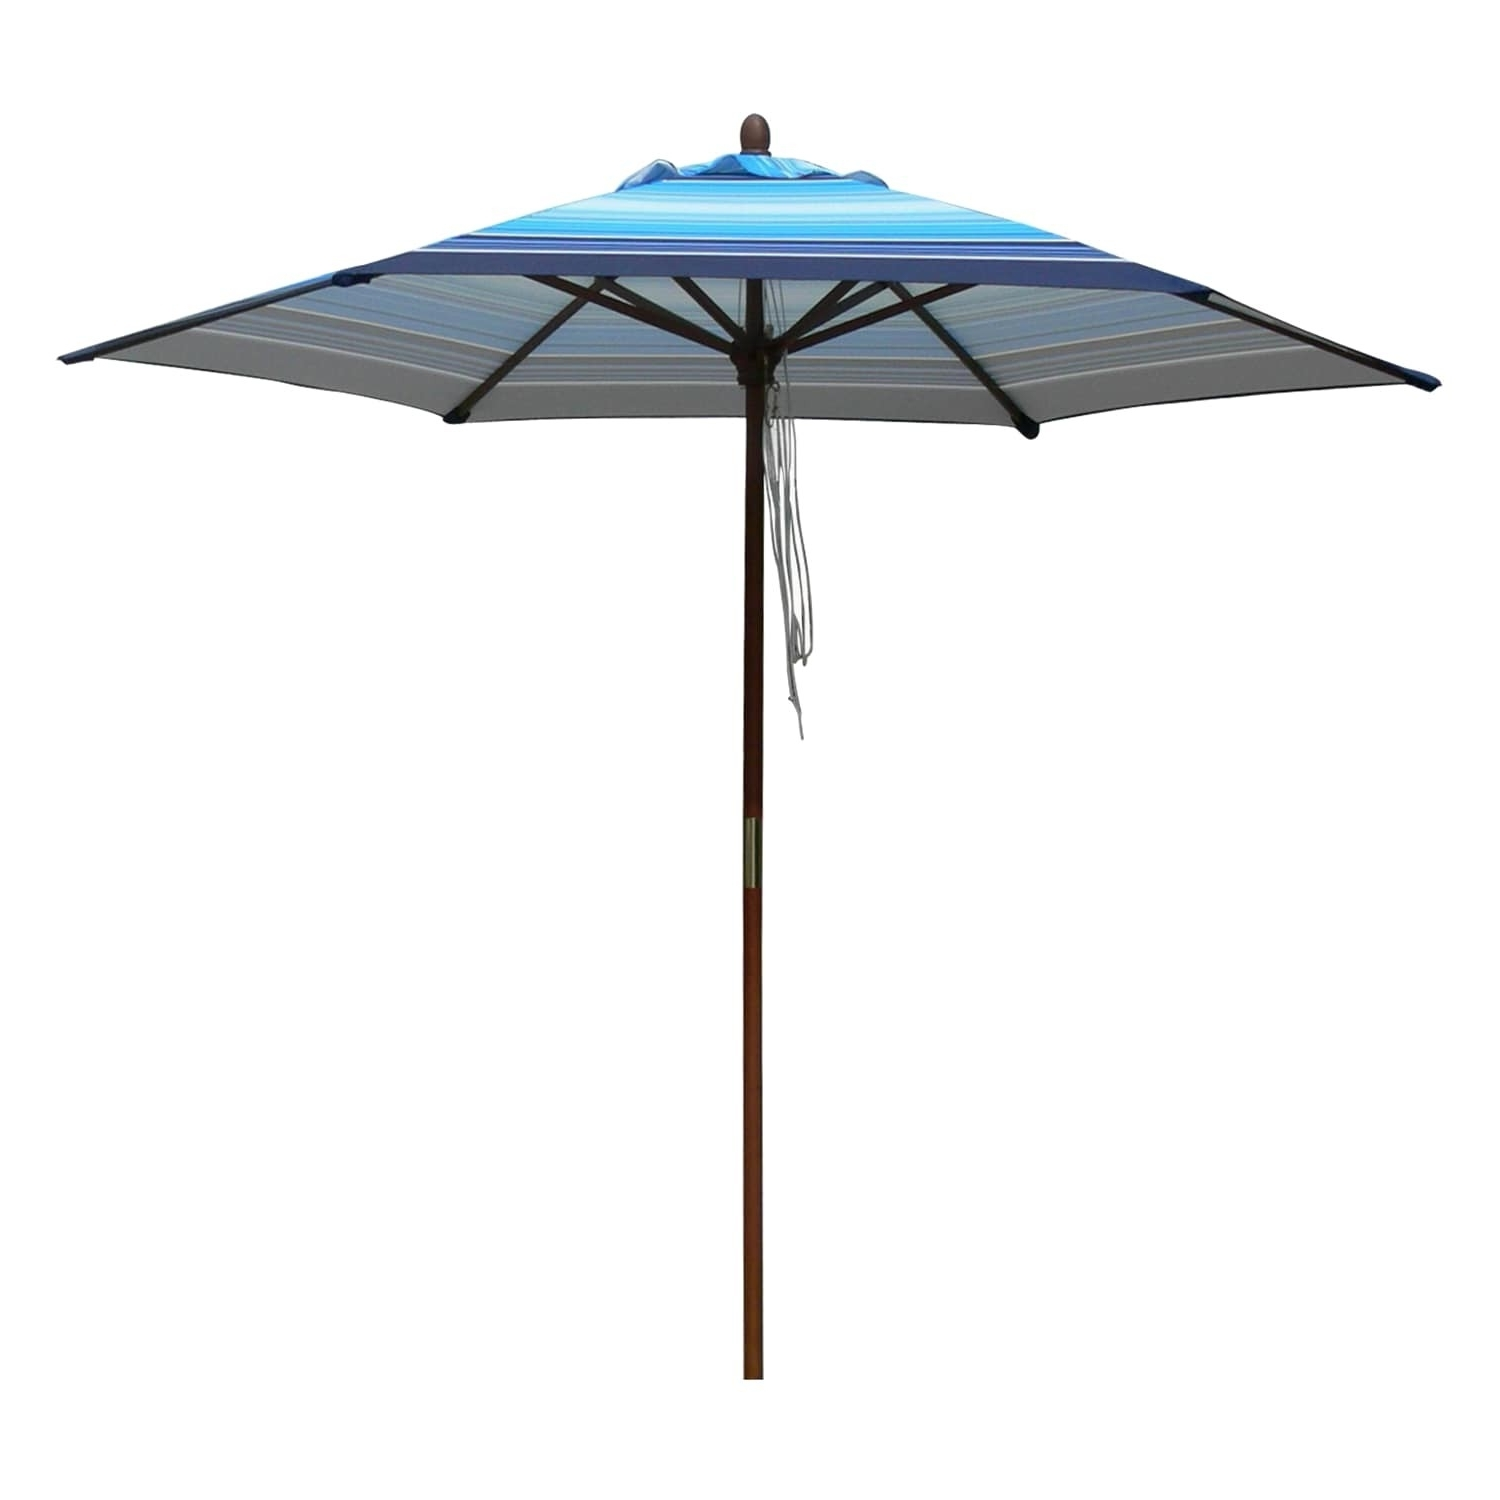 Most Recently Released Striped Outdoor Patio Umbrella Was 120 Now 20 75 Shipped Ac At Kohls Regarding Kohls Patio Umbrellas (View 16 of 20)